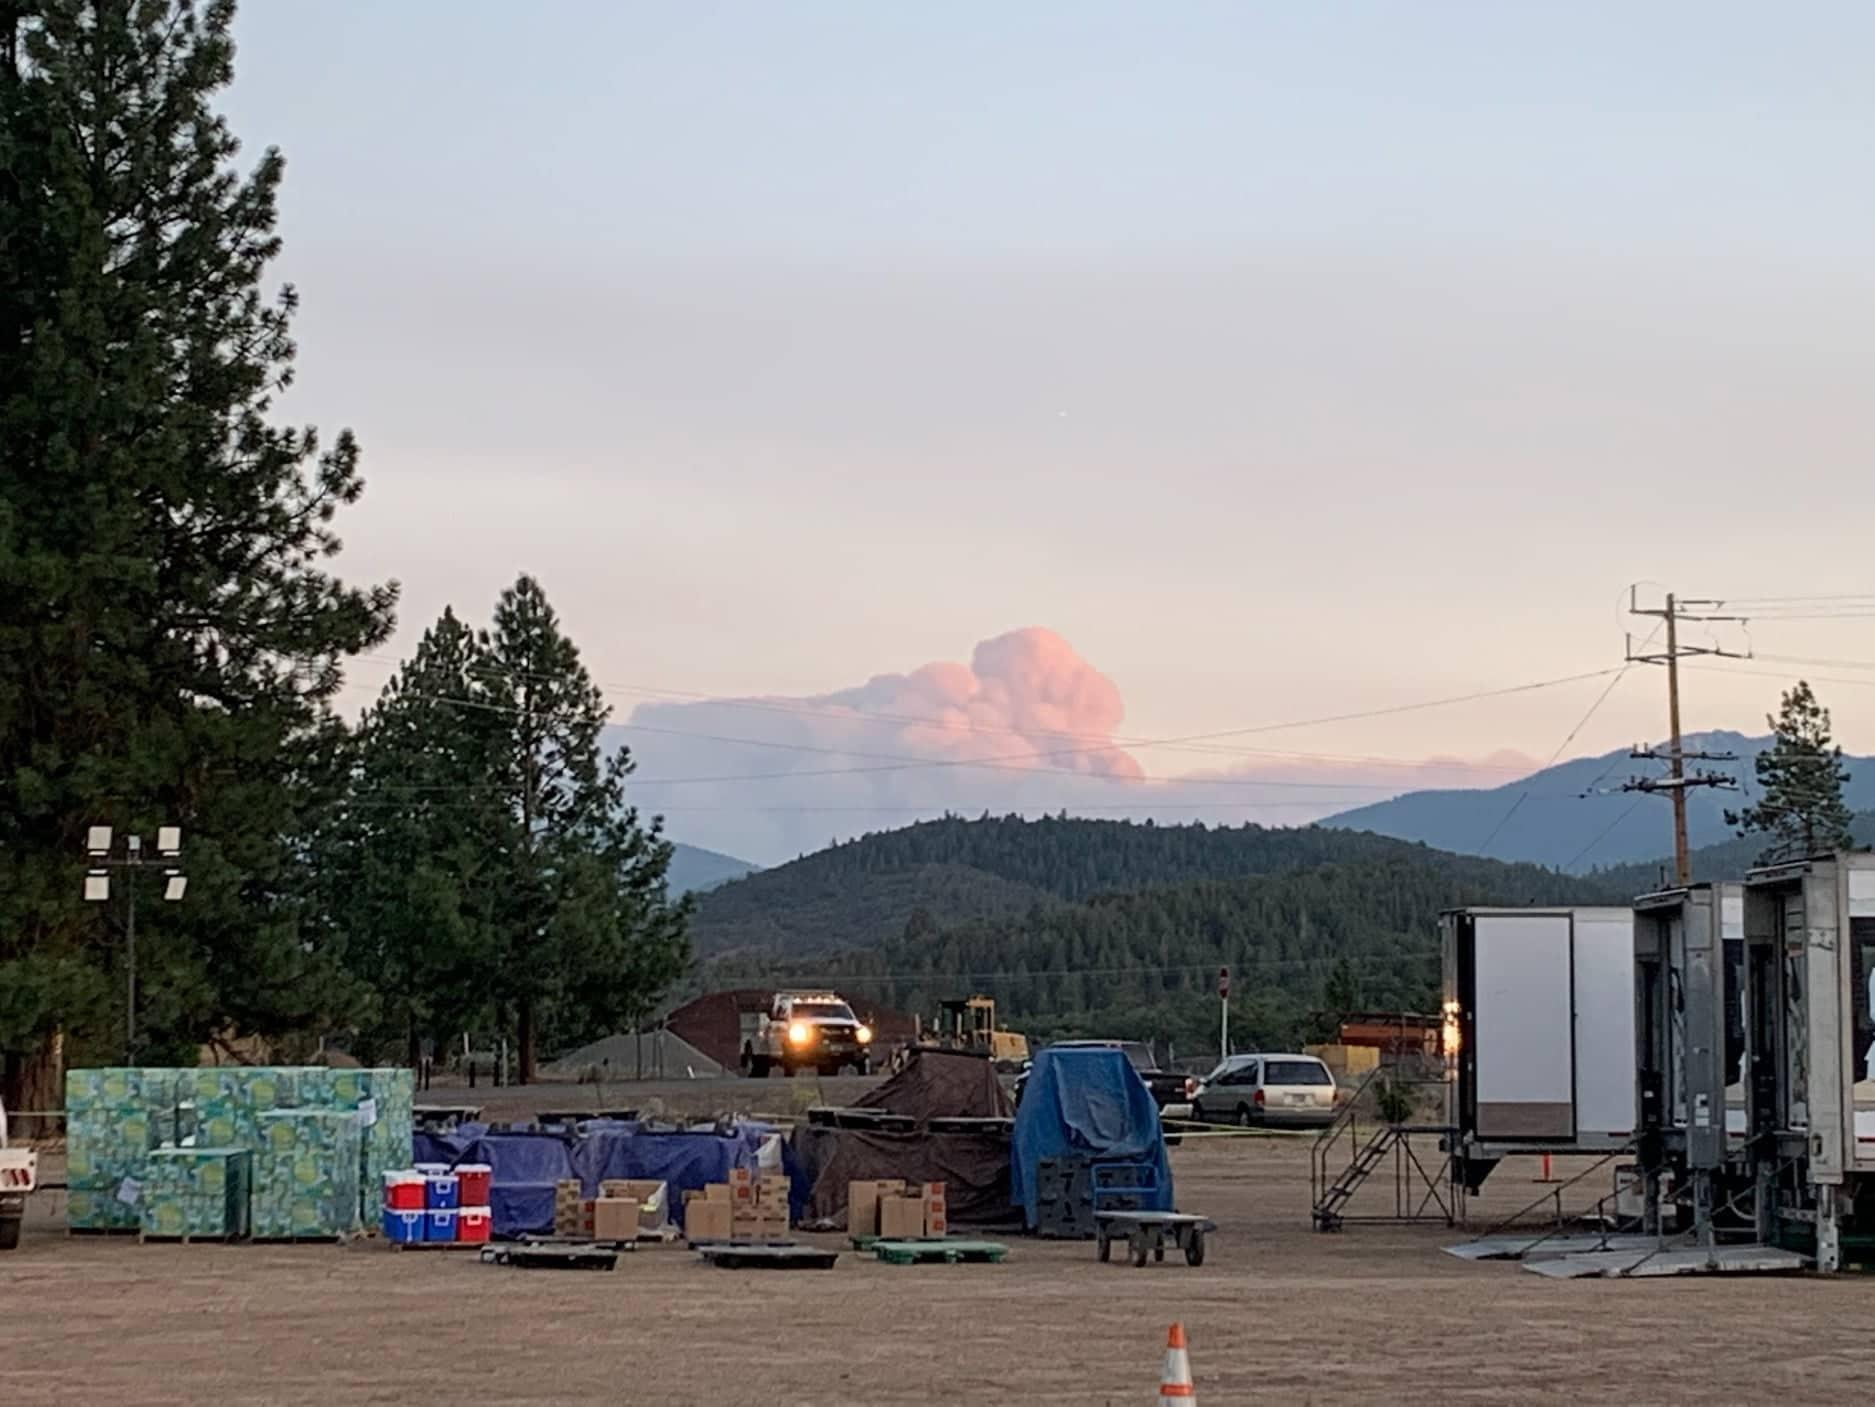 A large plume of smoke from the Haypress Fire is visible west of the town of Etna, CA